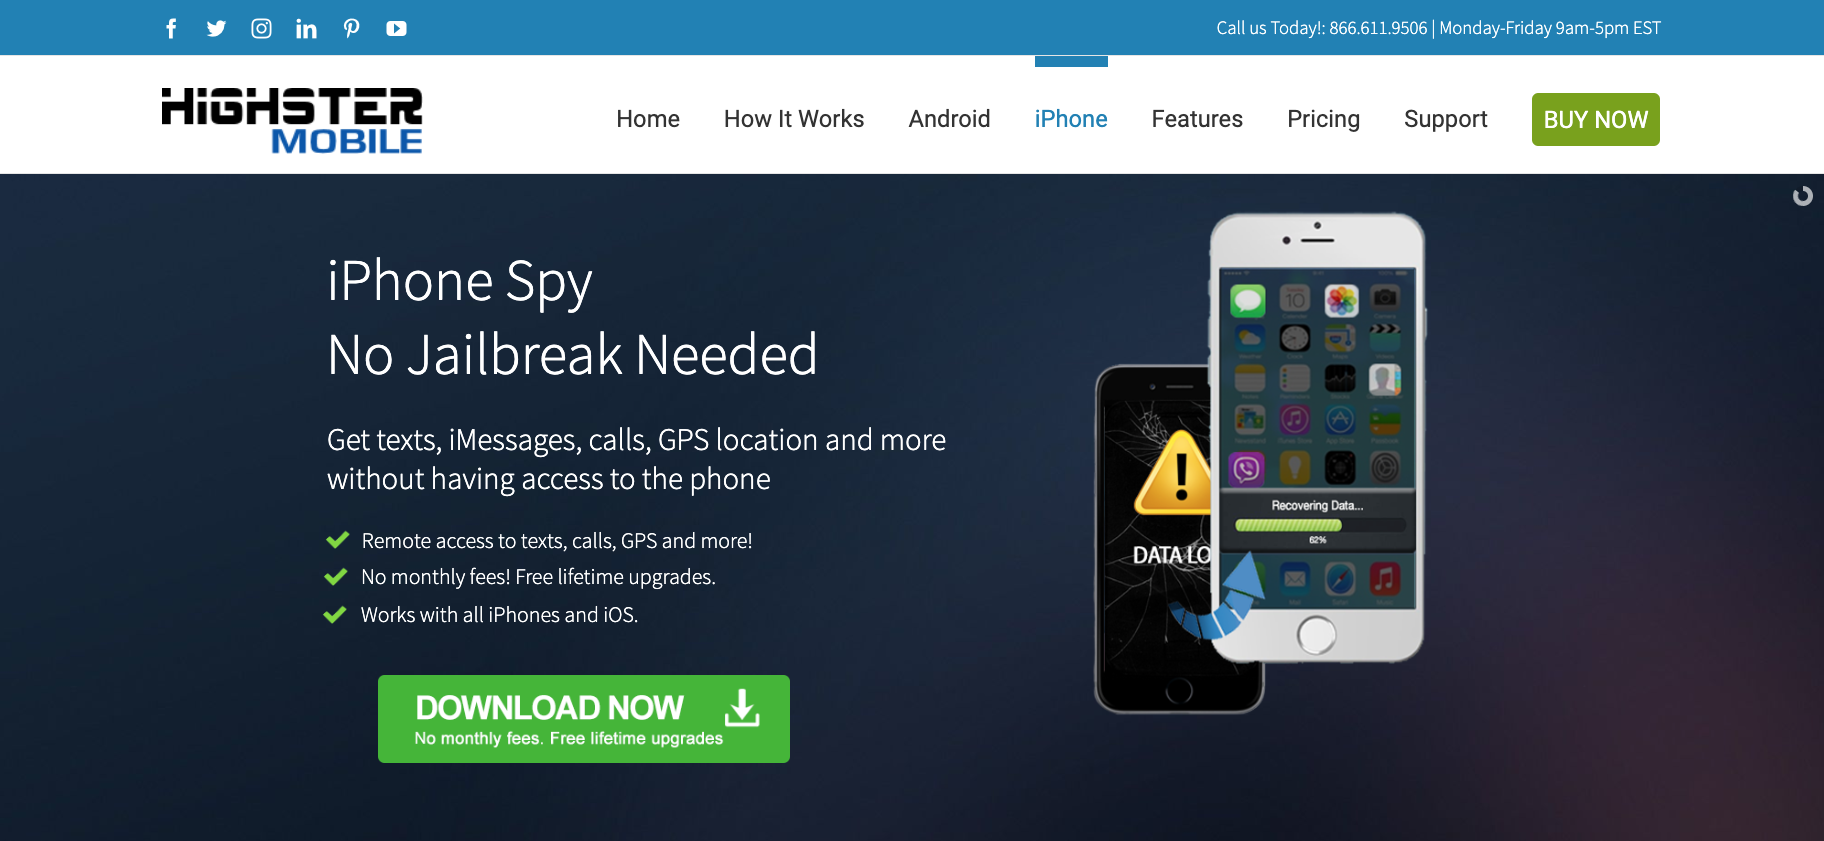 Highster Mobile - iPhone - Digital Security World